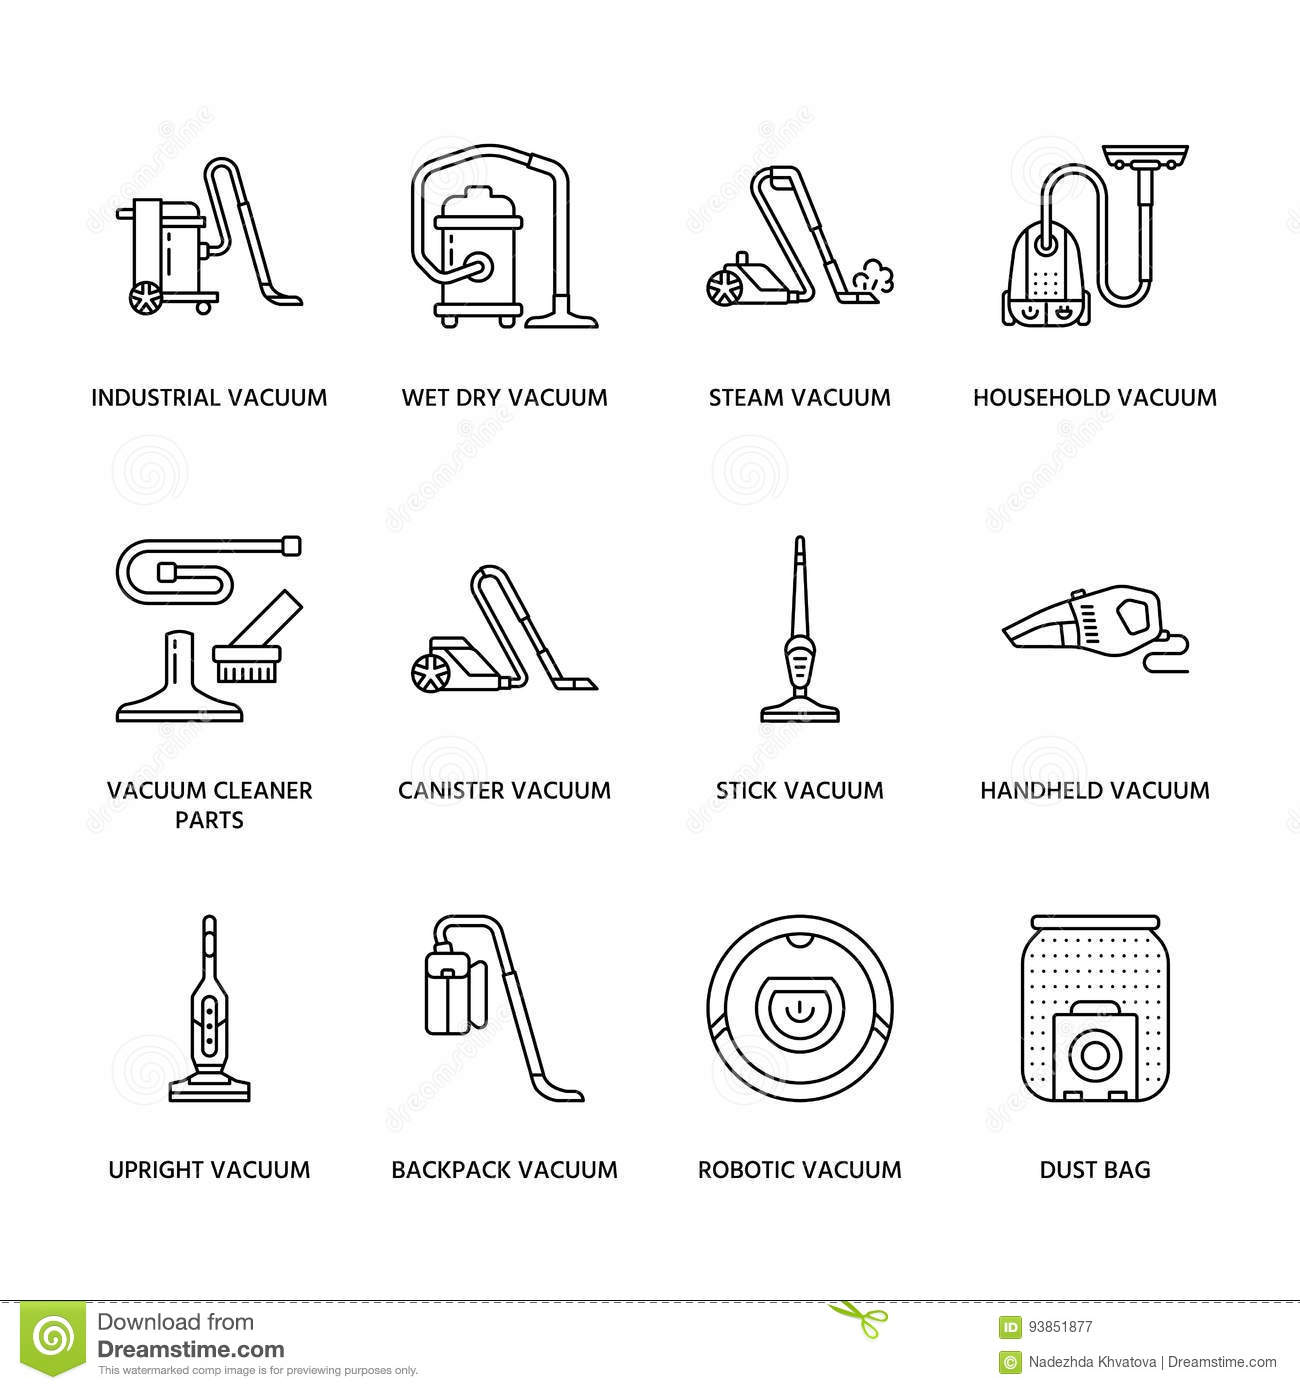 Vacuum Cleaners Colored Flat Line Icons Different Vacuums